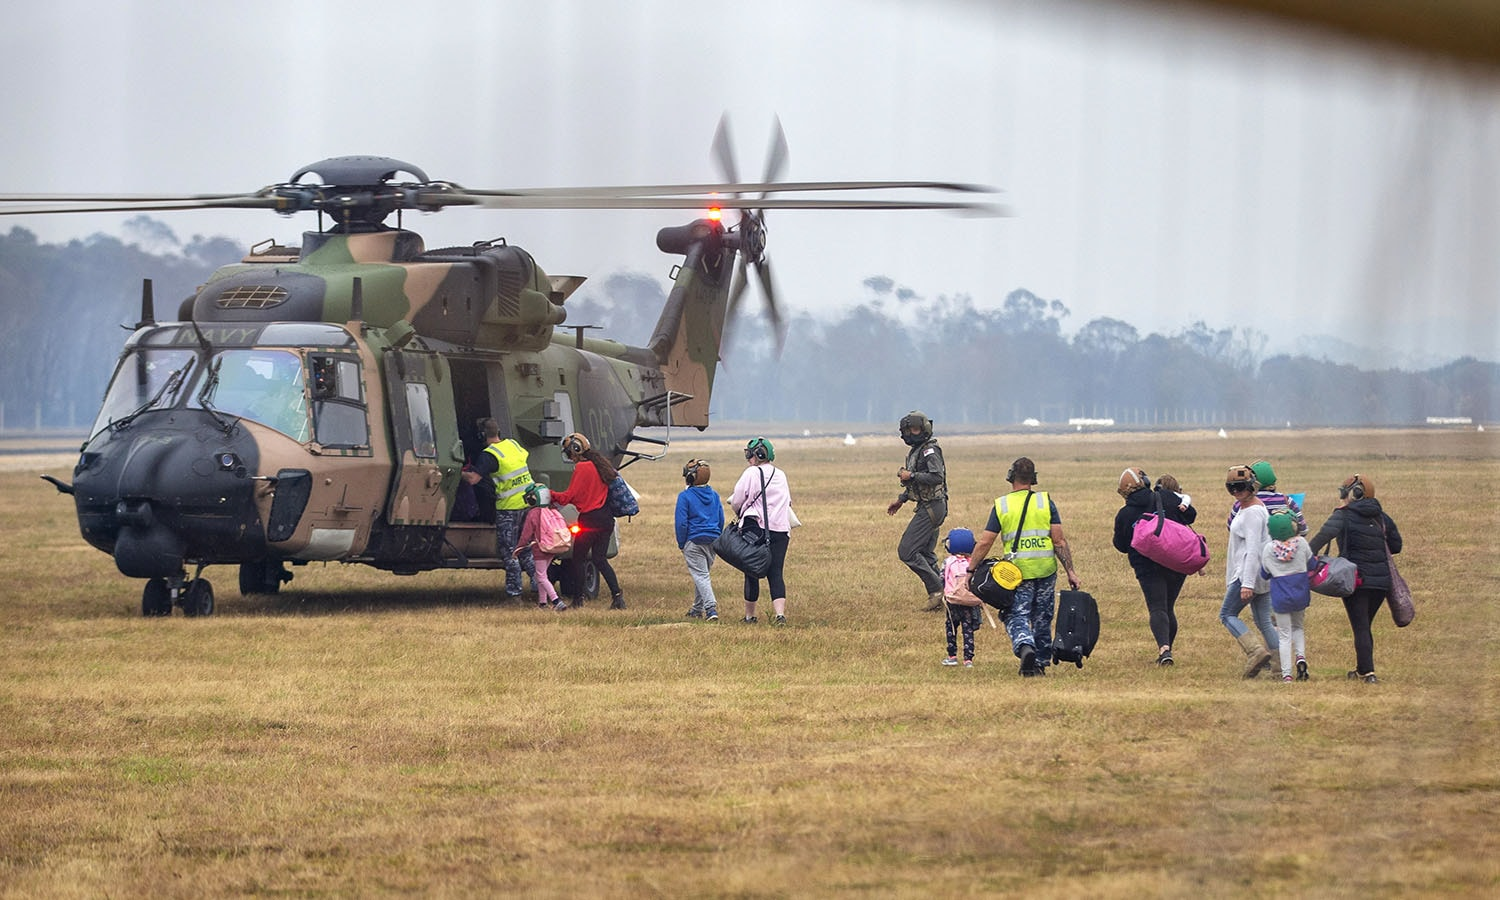 People rush to board a helicopter as the fire ravaged community of Mallacoota is evacuated. — AP